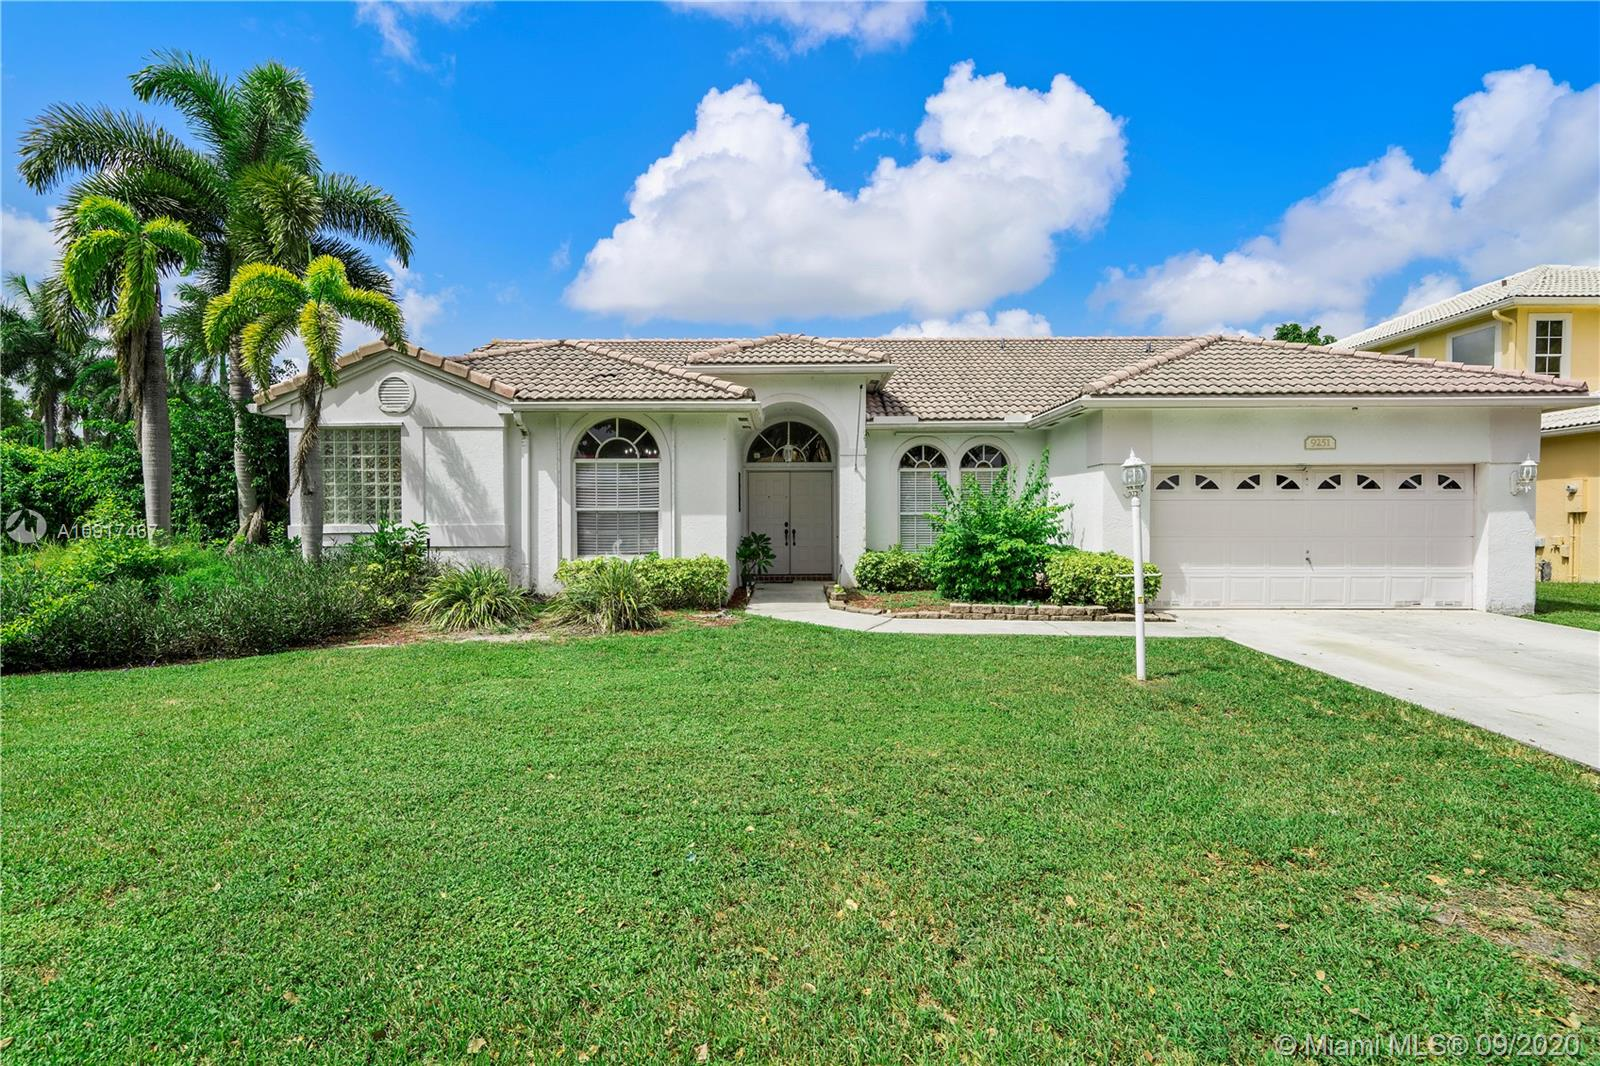 Amazing Opportunity Needs A New Roof Priced Below Market Value! 4 Bed, 2 Bath Waterfront Pool Home Located On Oversized Corner Lot In The Prestigious Coventry Coral Springs. Open White Kitchen Features Stainless Steel Appliances, Corian Countertops, Breakfast Bar + Nook, Recessed Lighting, And Pantry. Home Has Foyer Entry, Vaulted Ceilings, Family Room, Living Room & Formal Dining Area. Tile Flooring Throughout Common Areas. Large Master Suite Overlooks Pool/Lake & Has Vaulted Ceilings, & Dual Closets. Master Bath With Large Vanity Area, Dual Sinks, Separate Roman Tub & Shower. 2nd Hall Bath Has Large White Wood Vanity, Laundry Room W/Washer & Dryer. AC (2014). Newer Water Heater (2017). Covered Patio, Screened Pool, & Lush Landscaping. Lake Views. Low HOA. Don't Miss This Great Deal !!